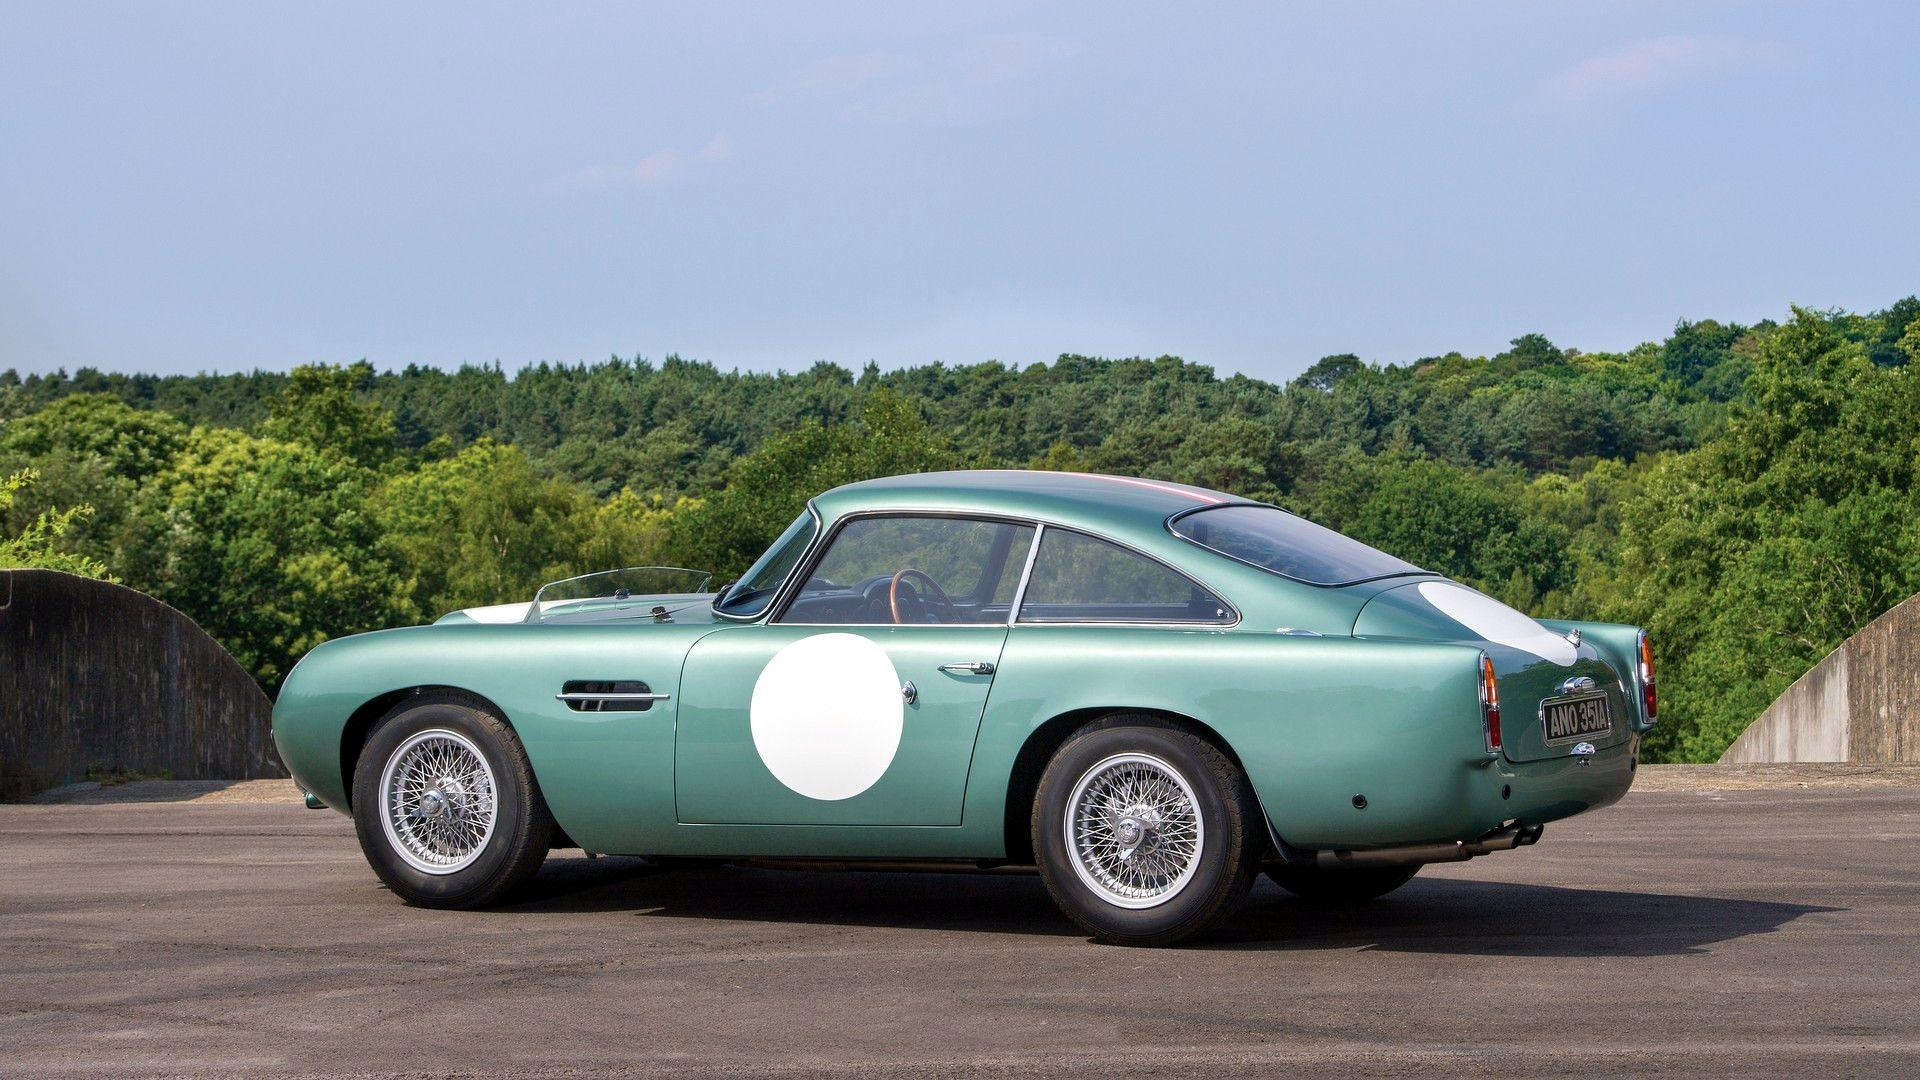 1959-aston-martin-db4gt-copyright-tim-scott-rm-sothebys (2)